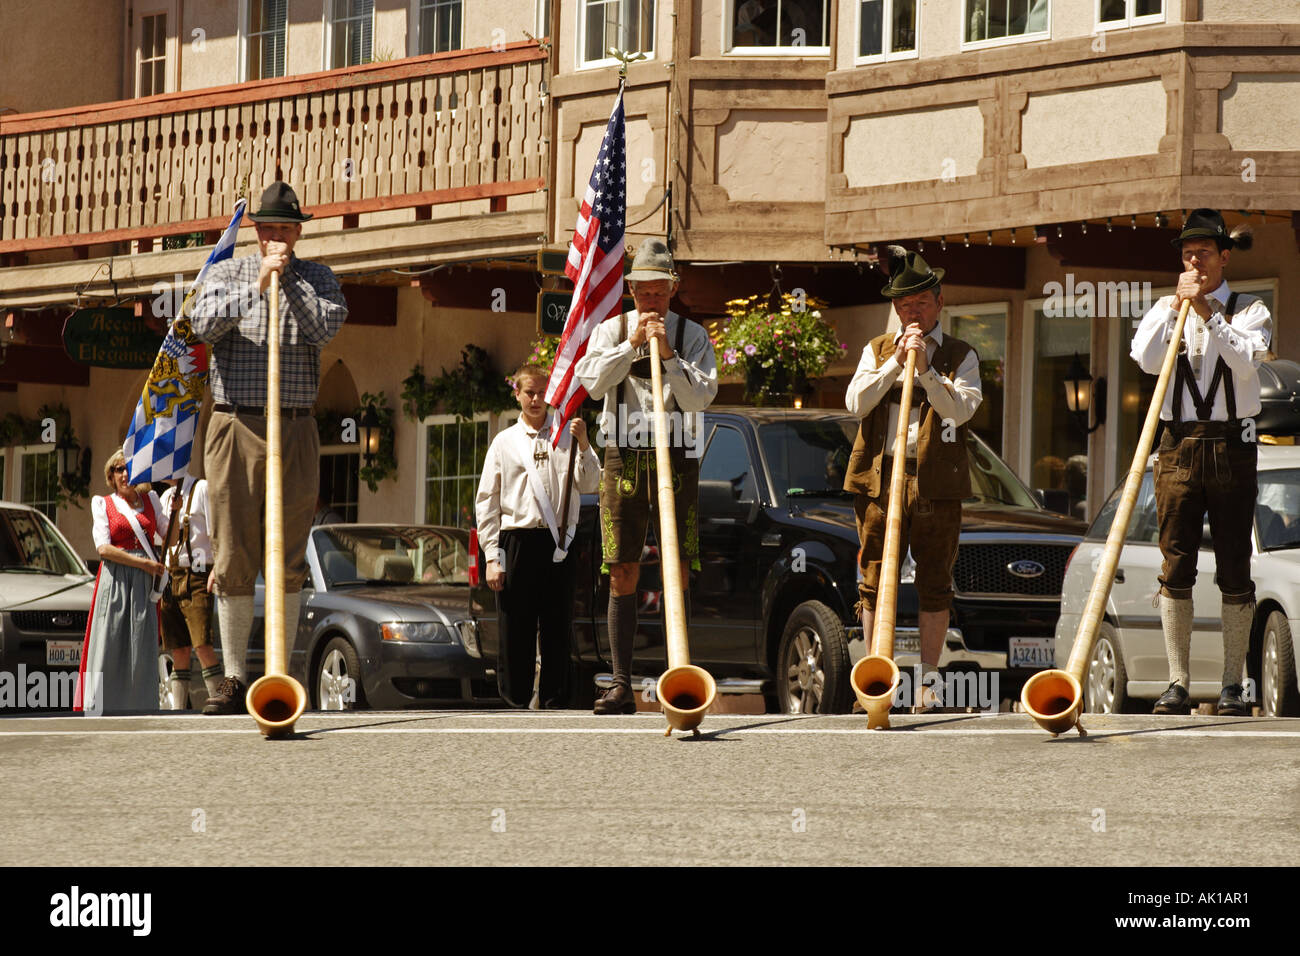 Leavenworth Oktoberfest High Resolution Stock Photography And Images Alamy